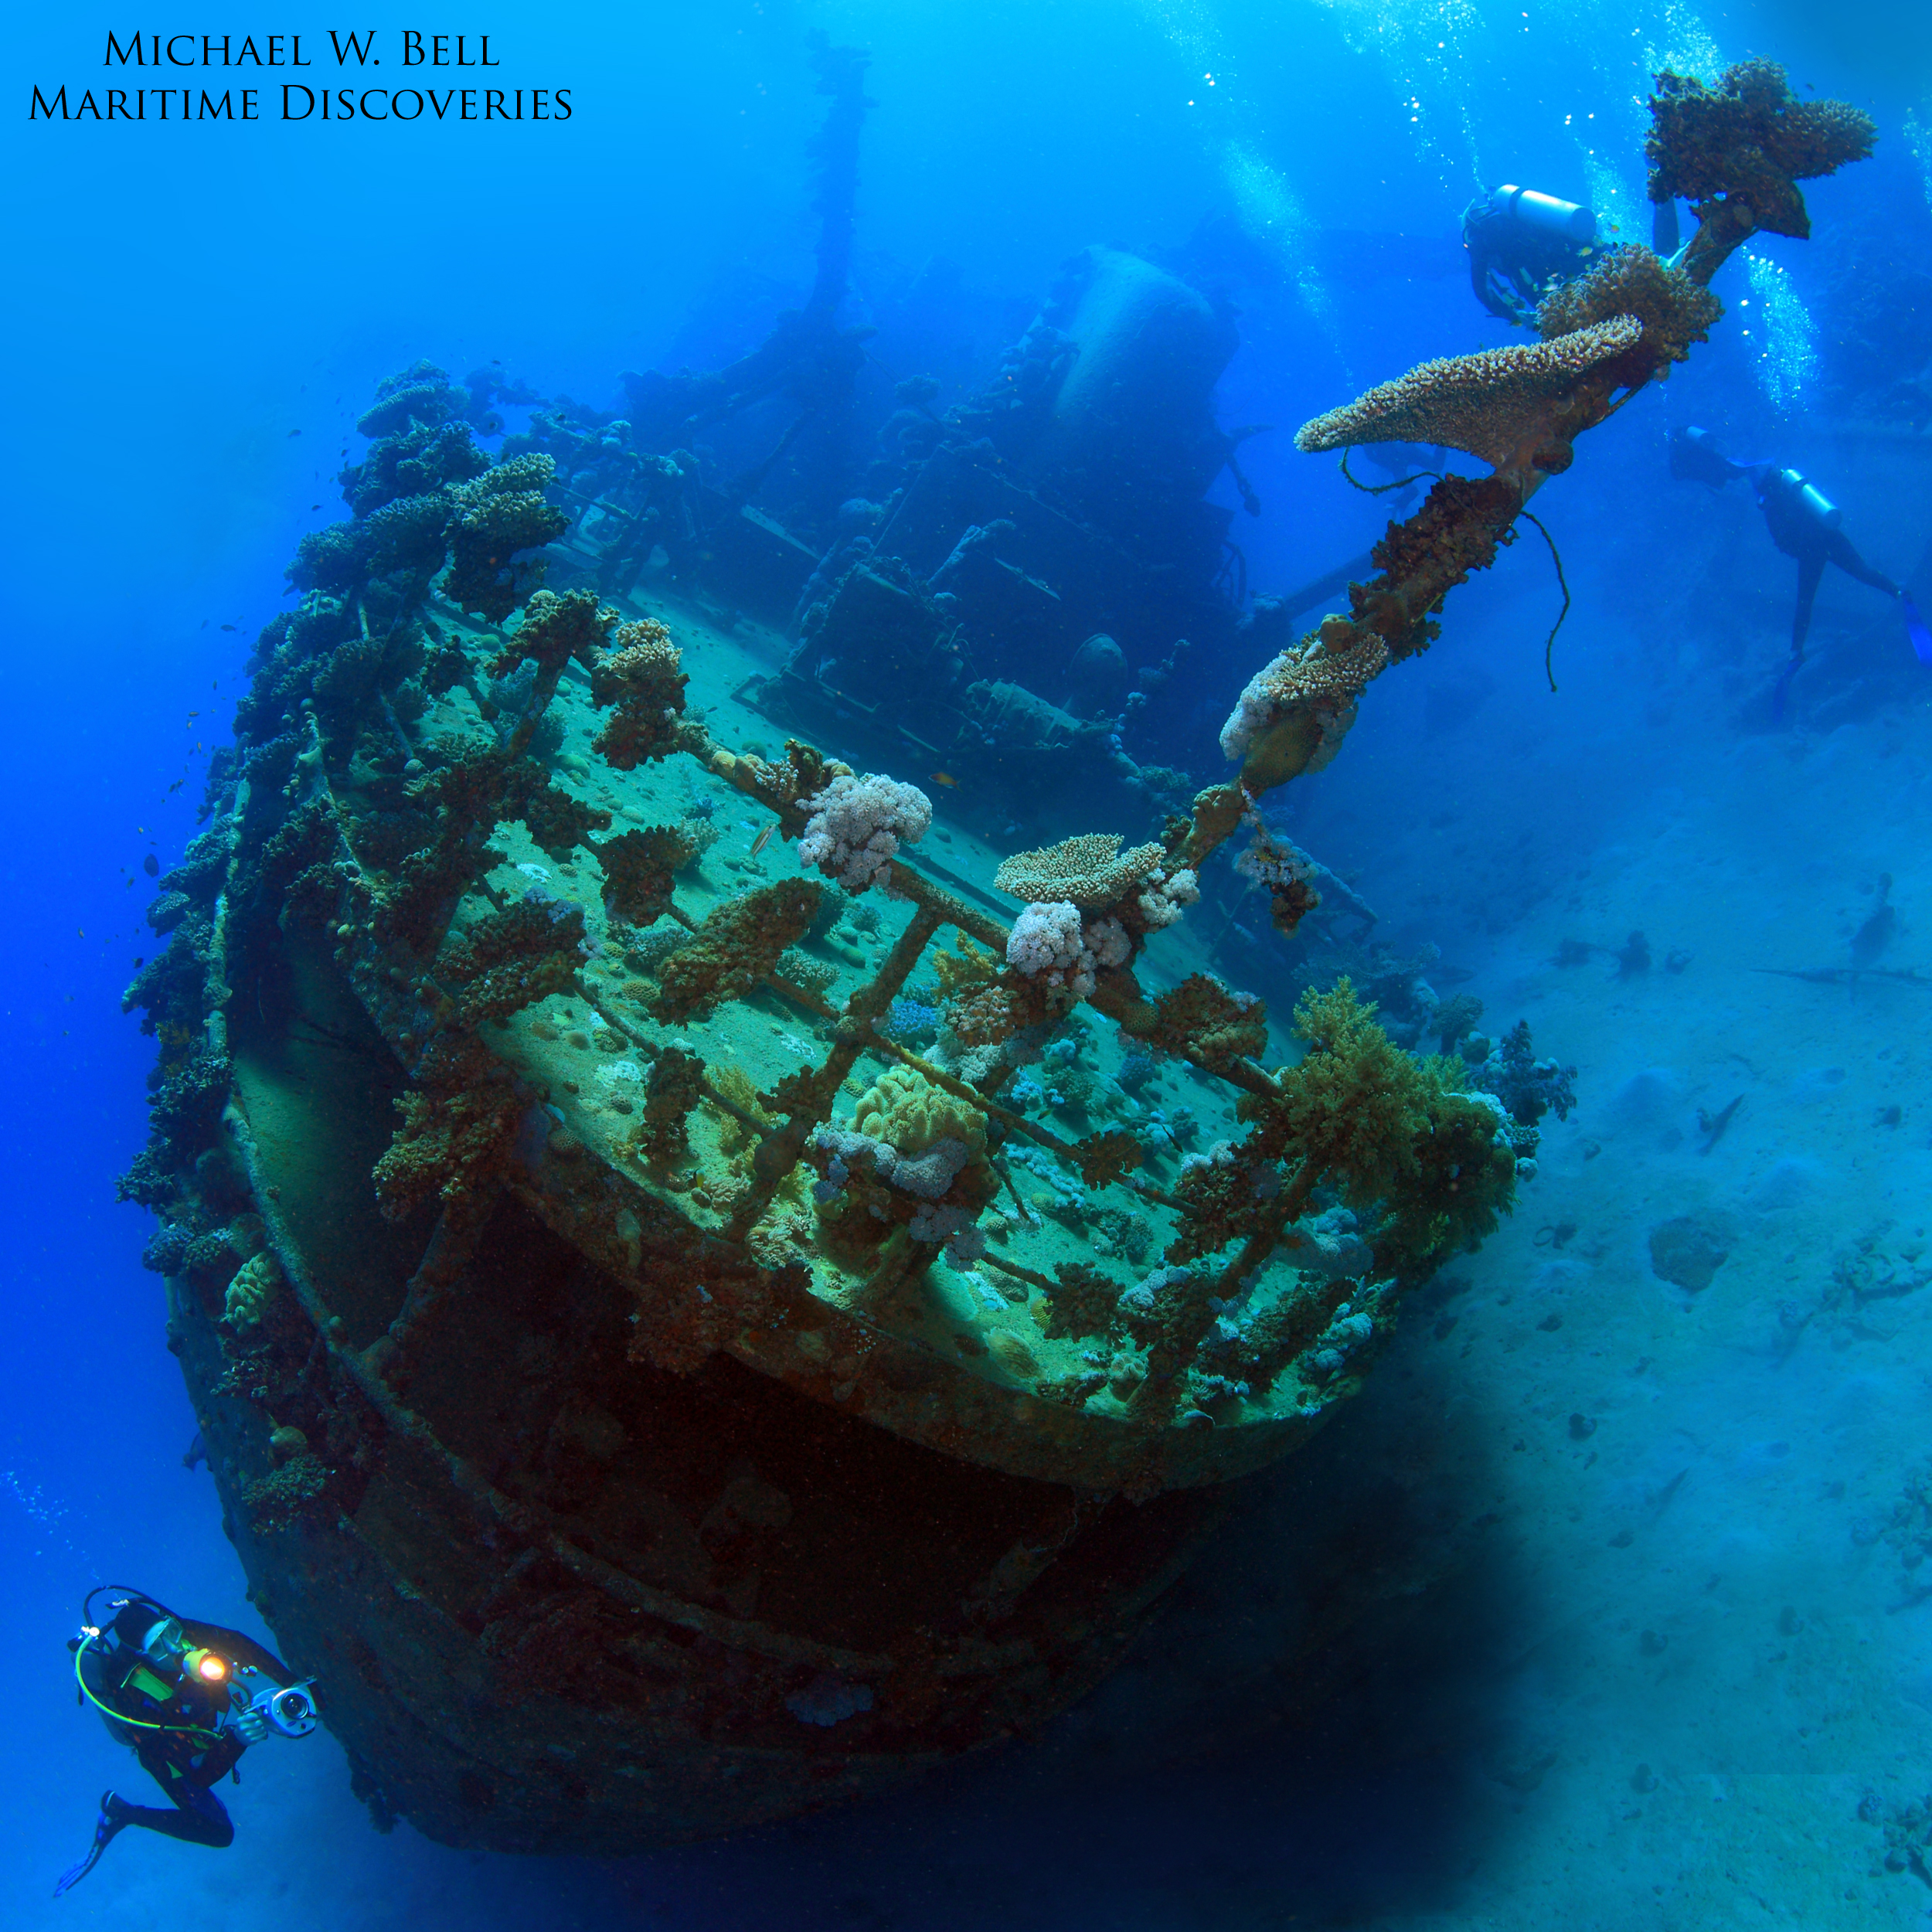 MICHAEL W. BELLMaritime Discoveries - AEP0001 - Single